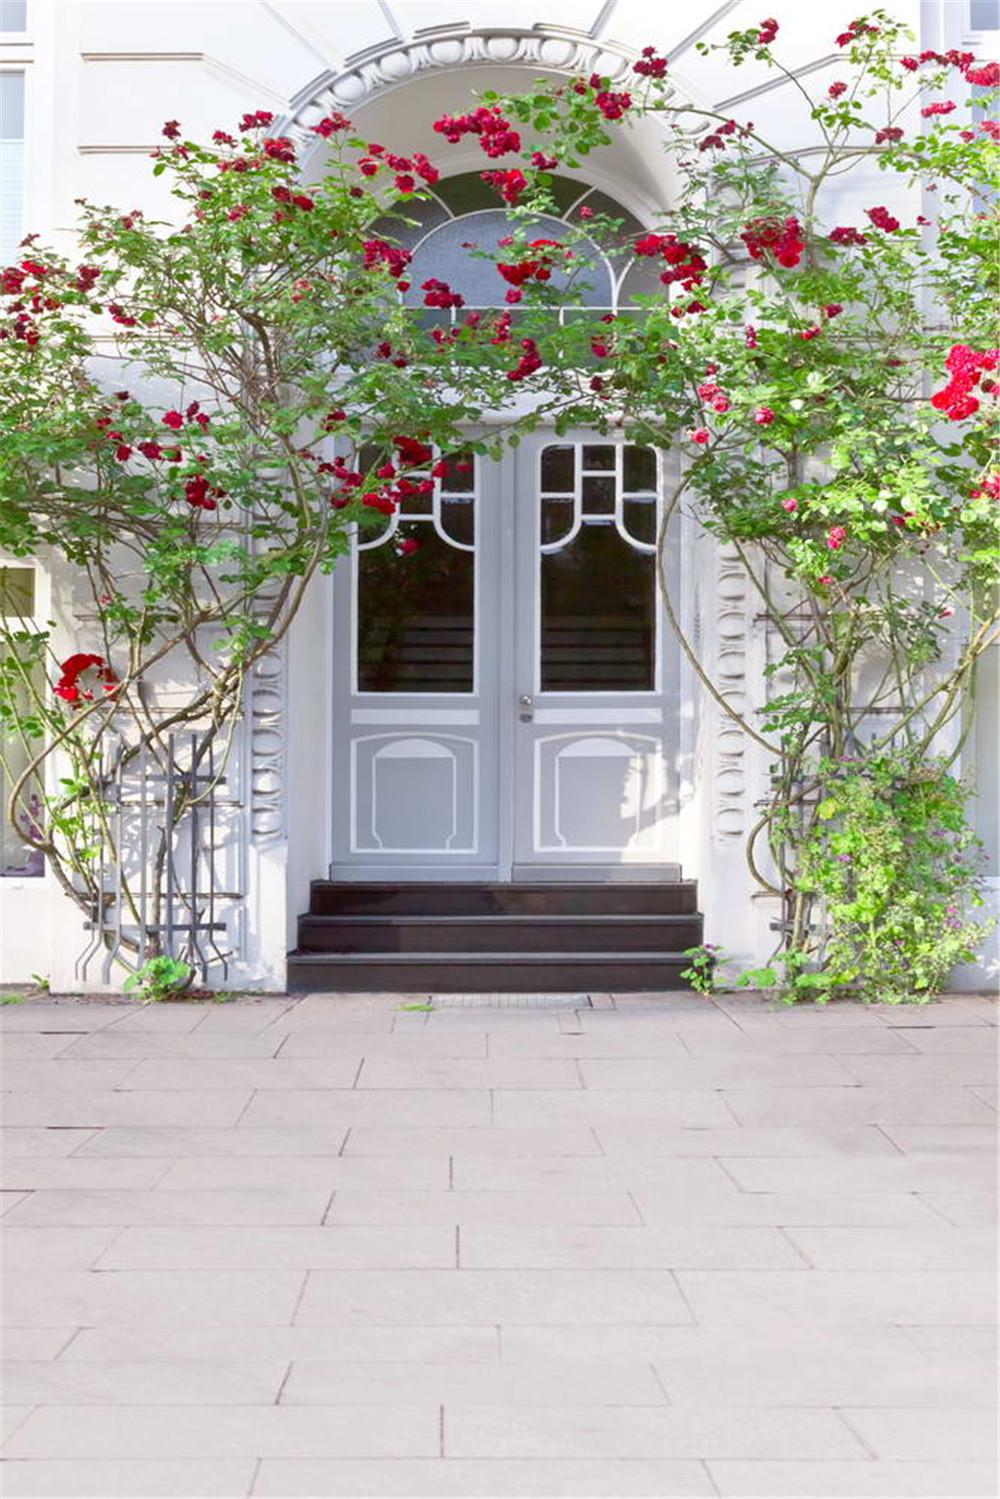 Outdoor House White Doors Romantic Wedding Photography Backdrops Red Roses Vines Stairs Studio Photo Shoot Background